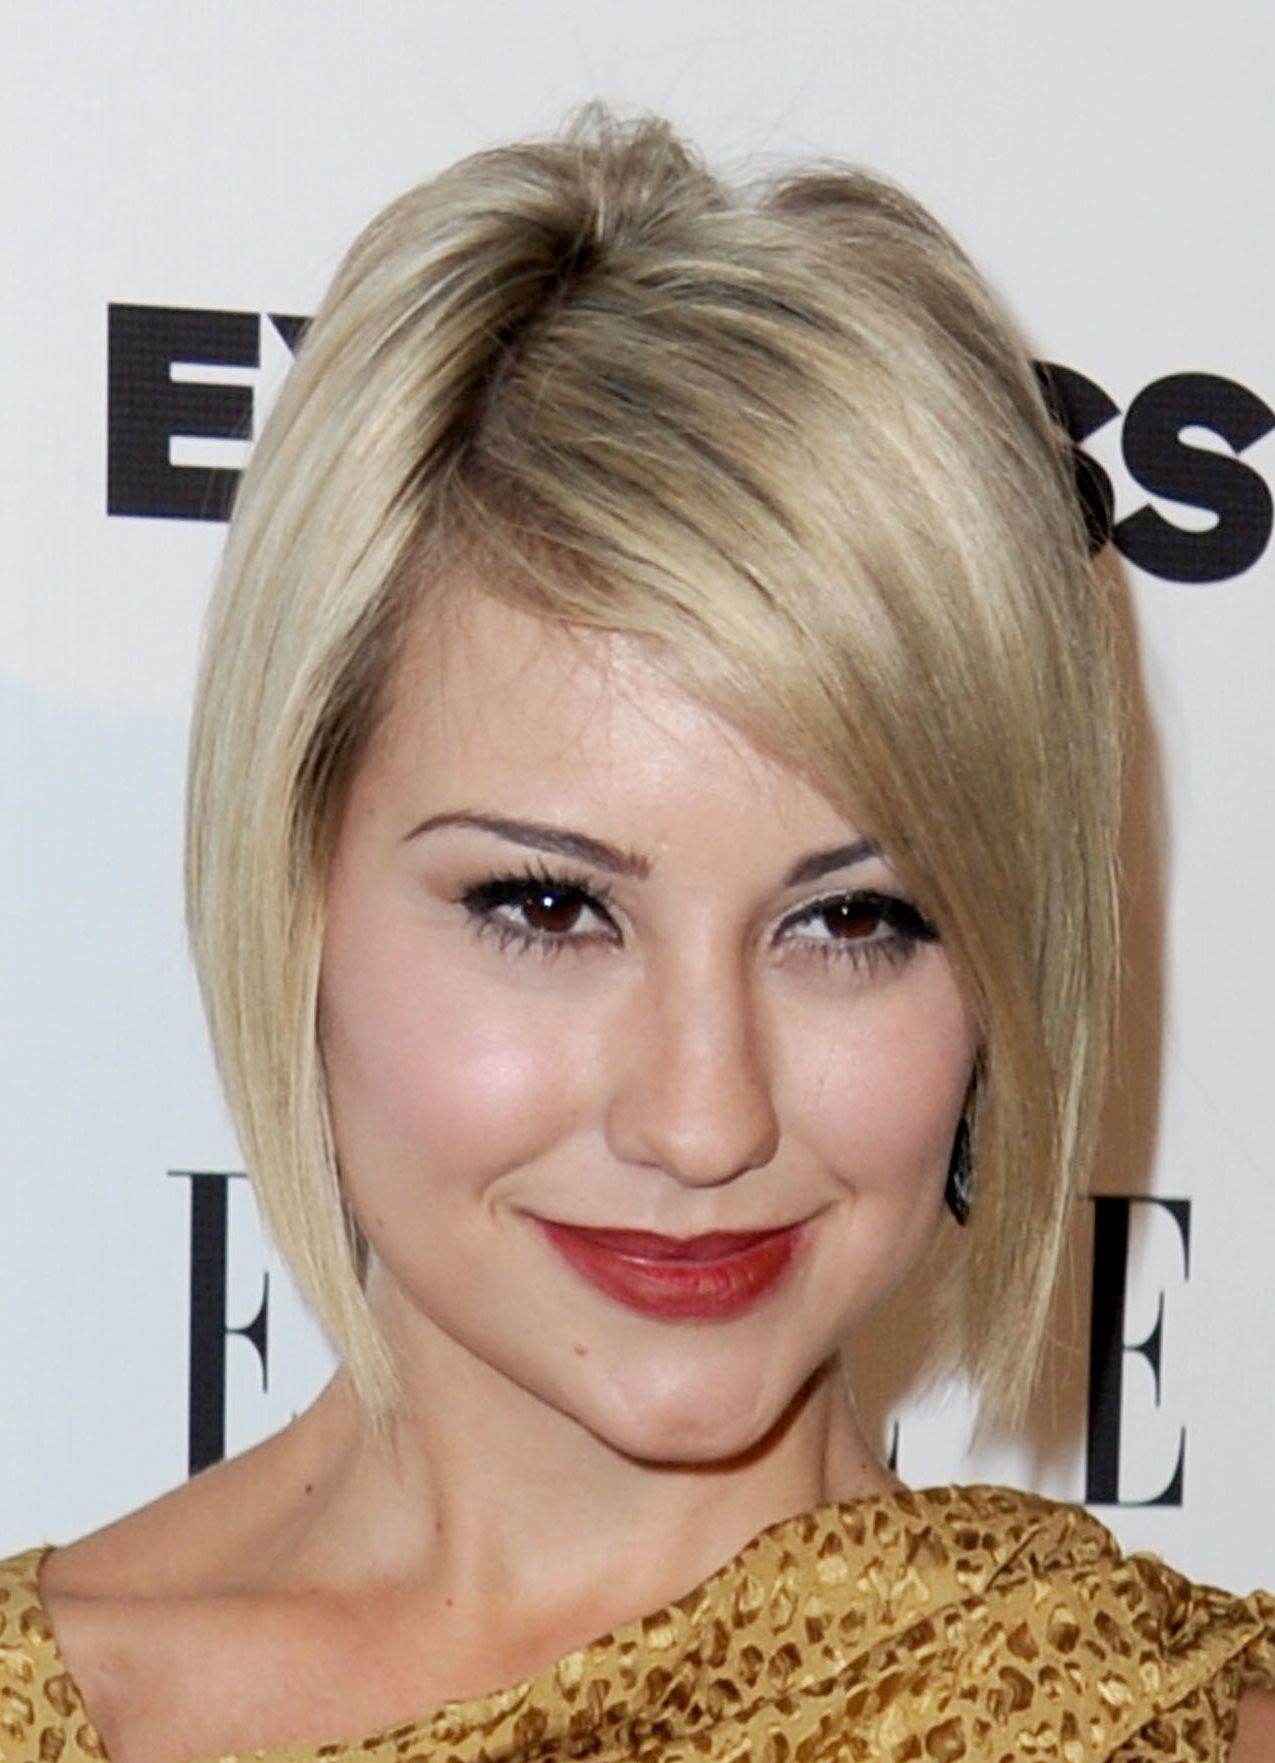 12 Amazing Hairstyles For The Oblong Face Shape